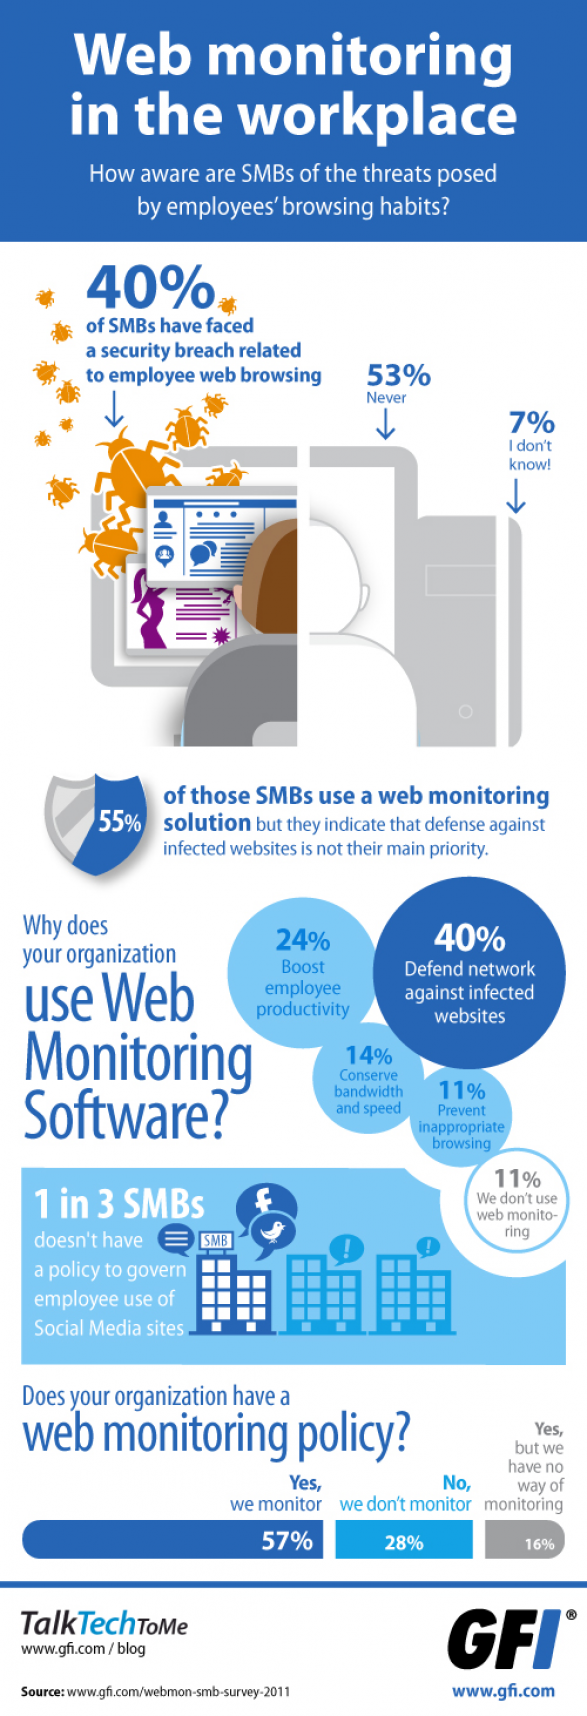 Web monitoring in the workplace